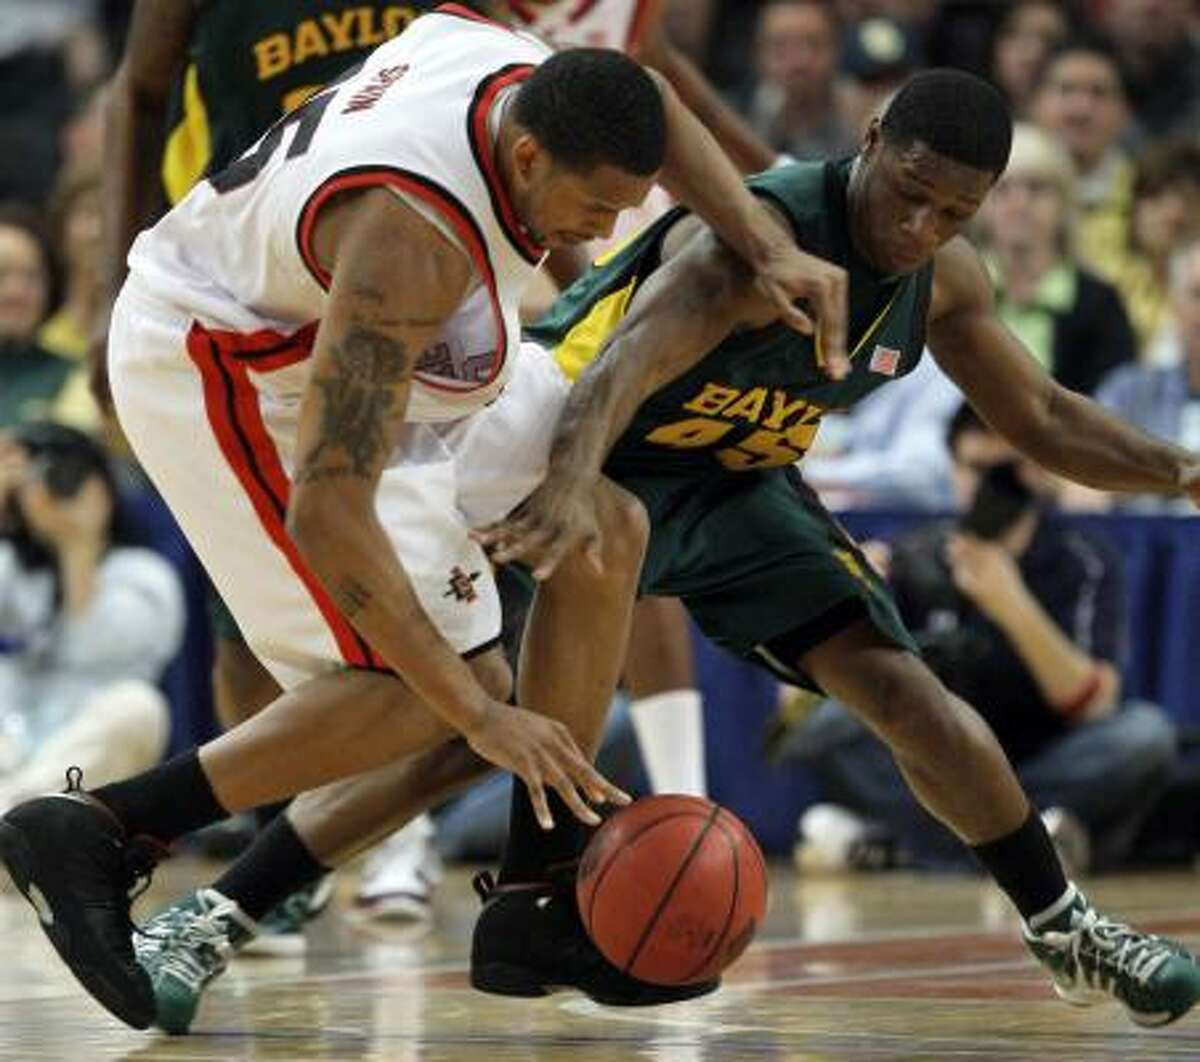 San Diego State's Kyle Spain (15) fights for control of the ball with Baylor's Darren Kent (45).